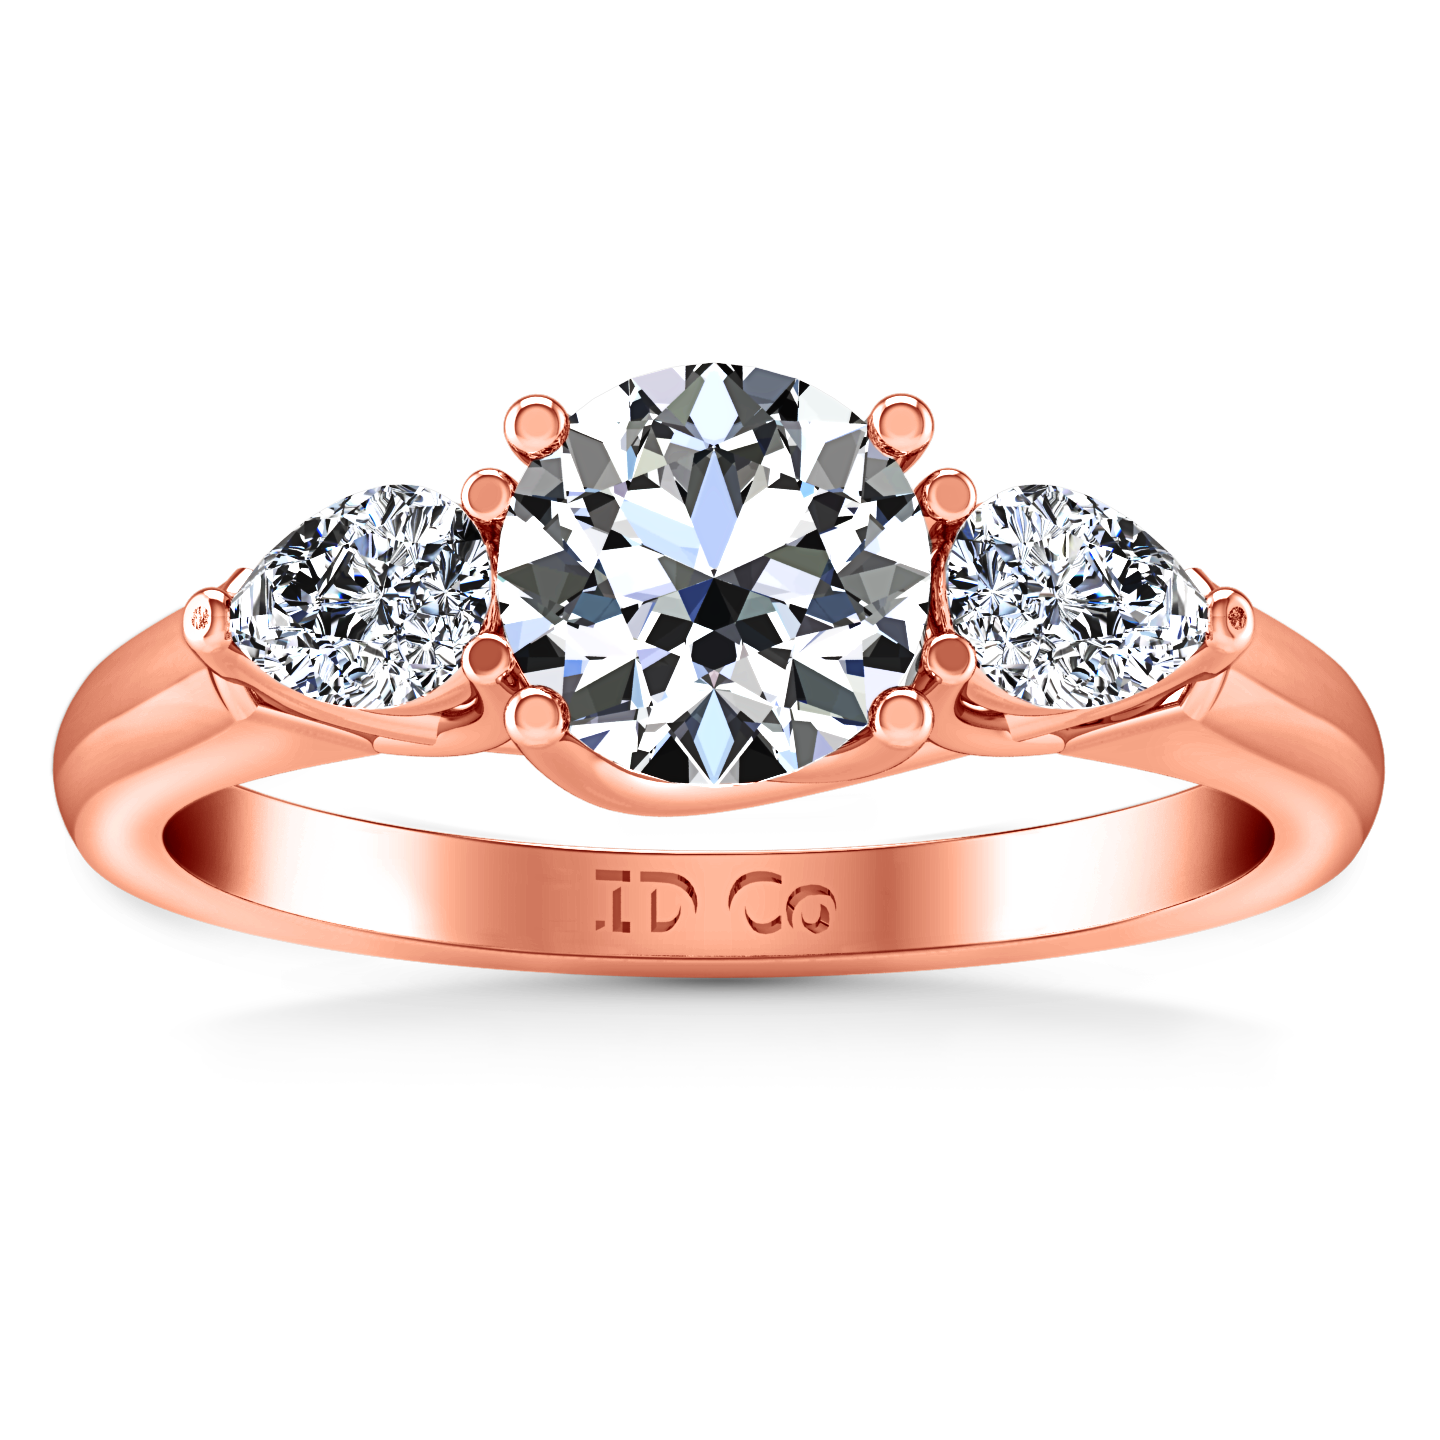 inspired diamond solitaire products eco ring rose foundry friendly rings traditional altana gold engagement marie prong setting claw